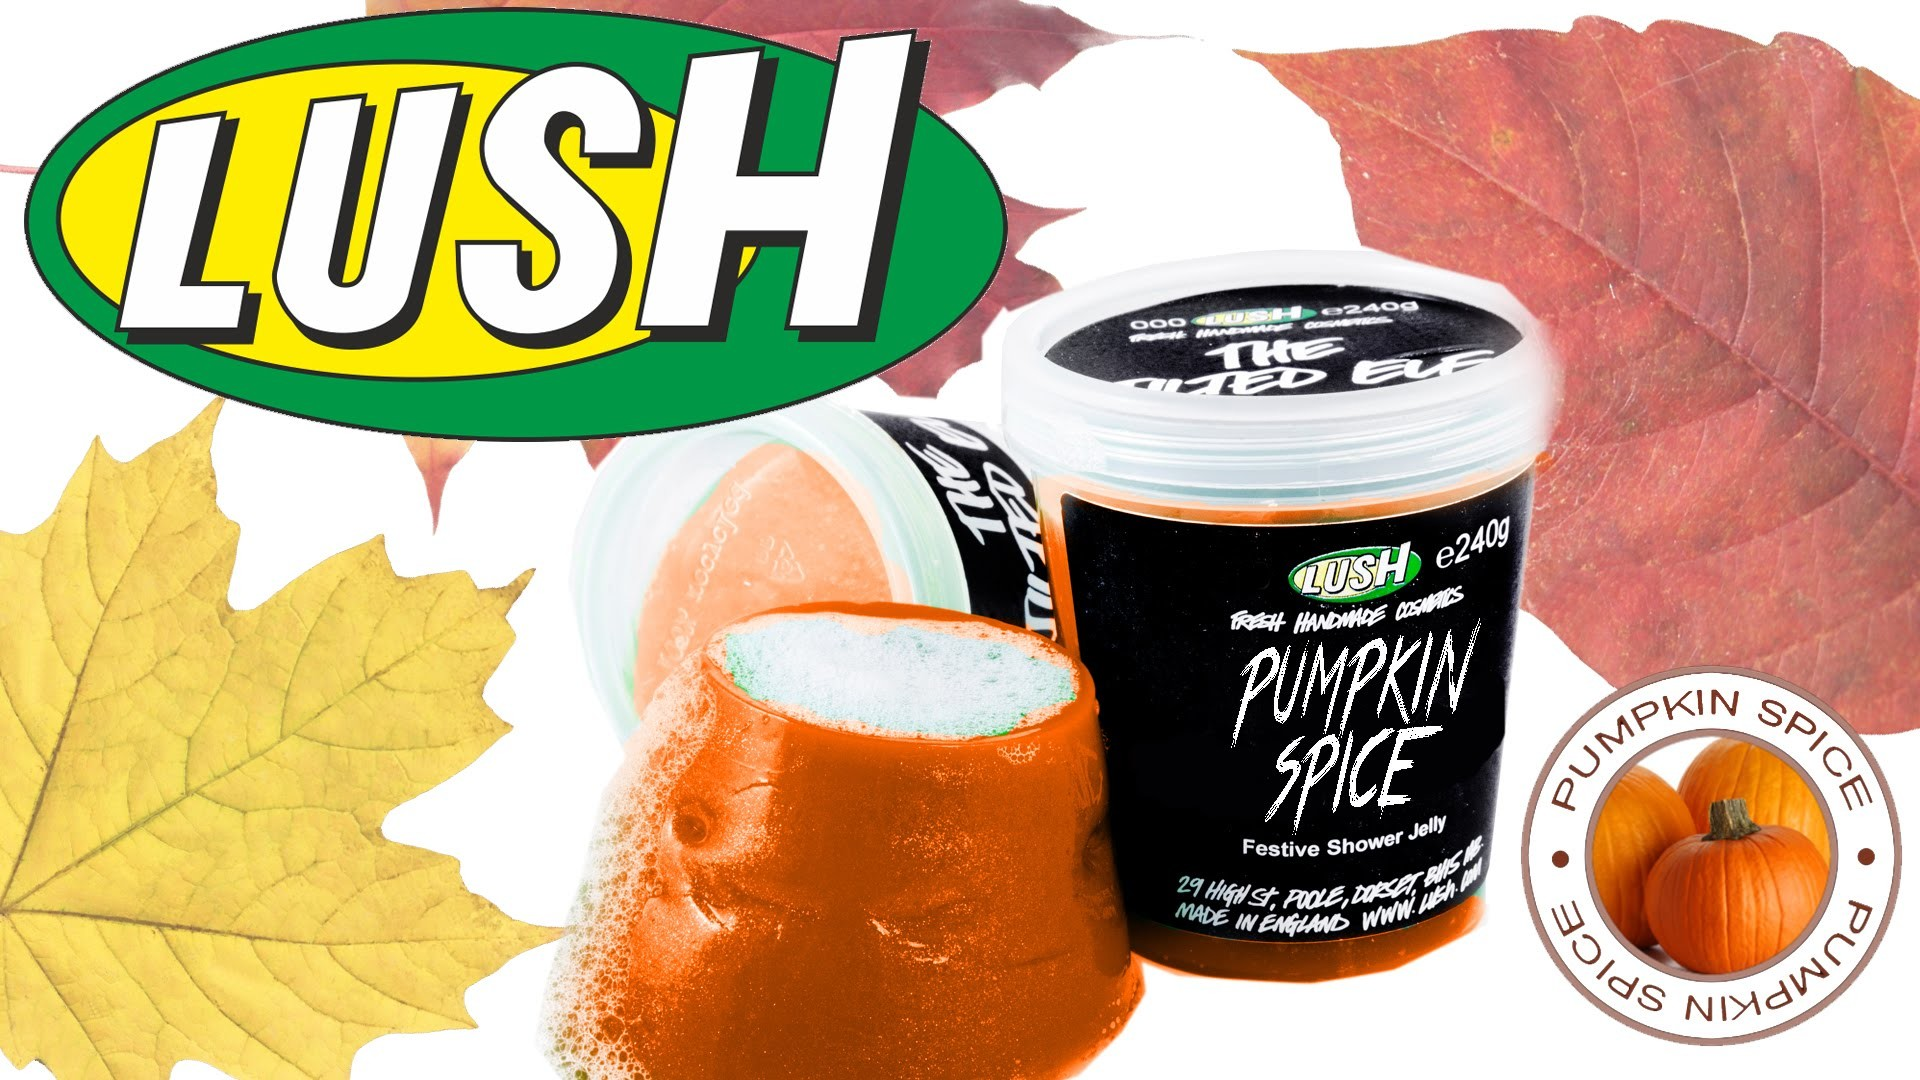 DIY | Lush Pumpkin Spice Soap Jelly - HOW TO MAKE A LUSH SHOWER JELLY!!!